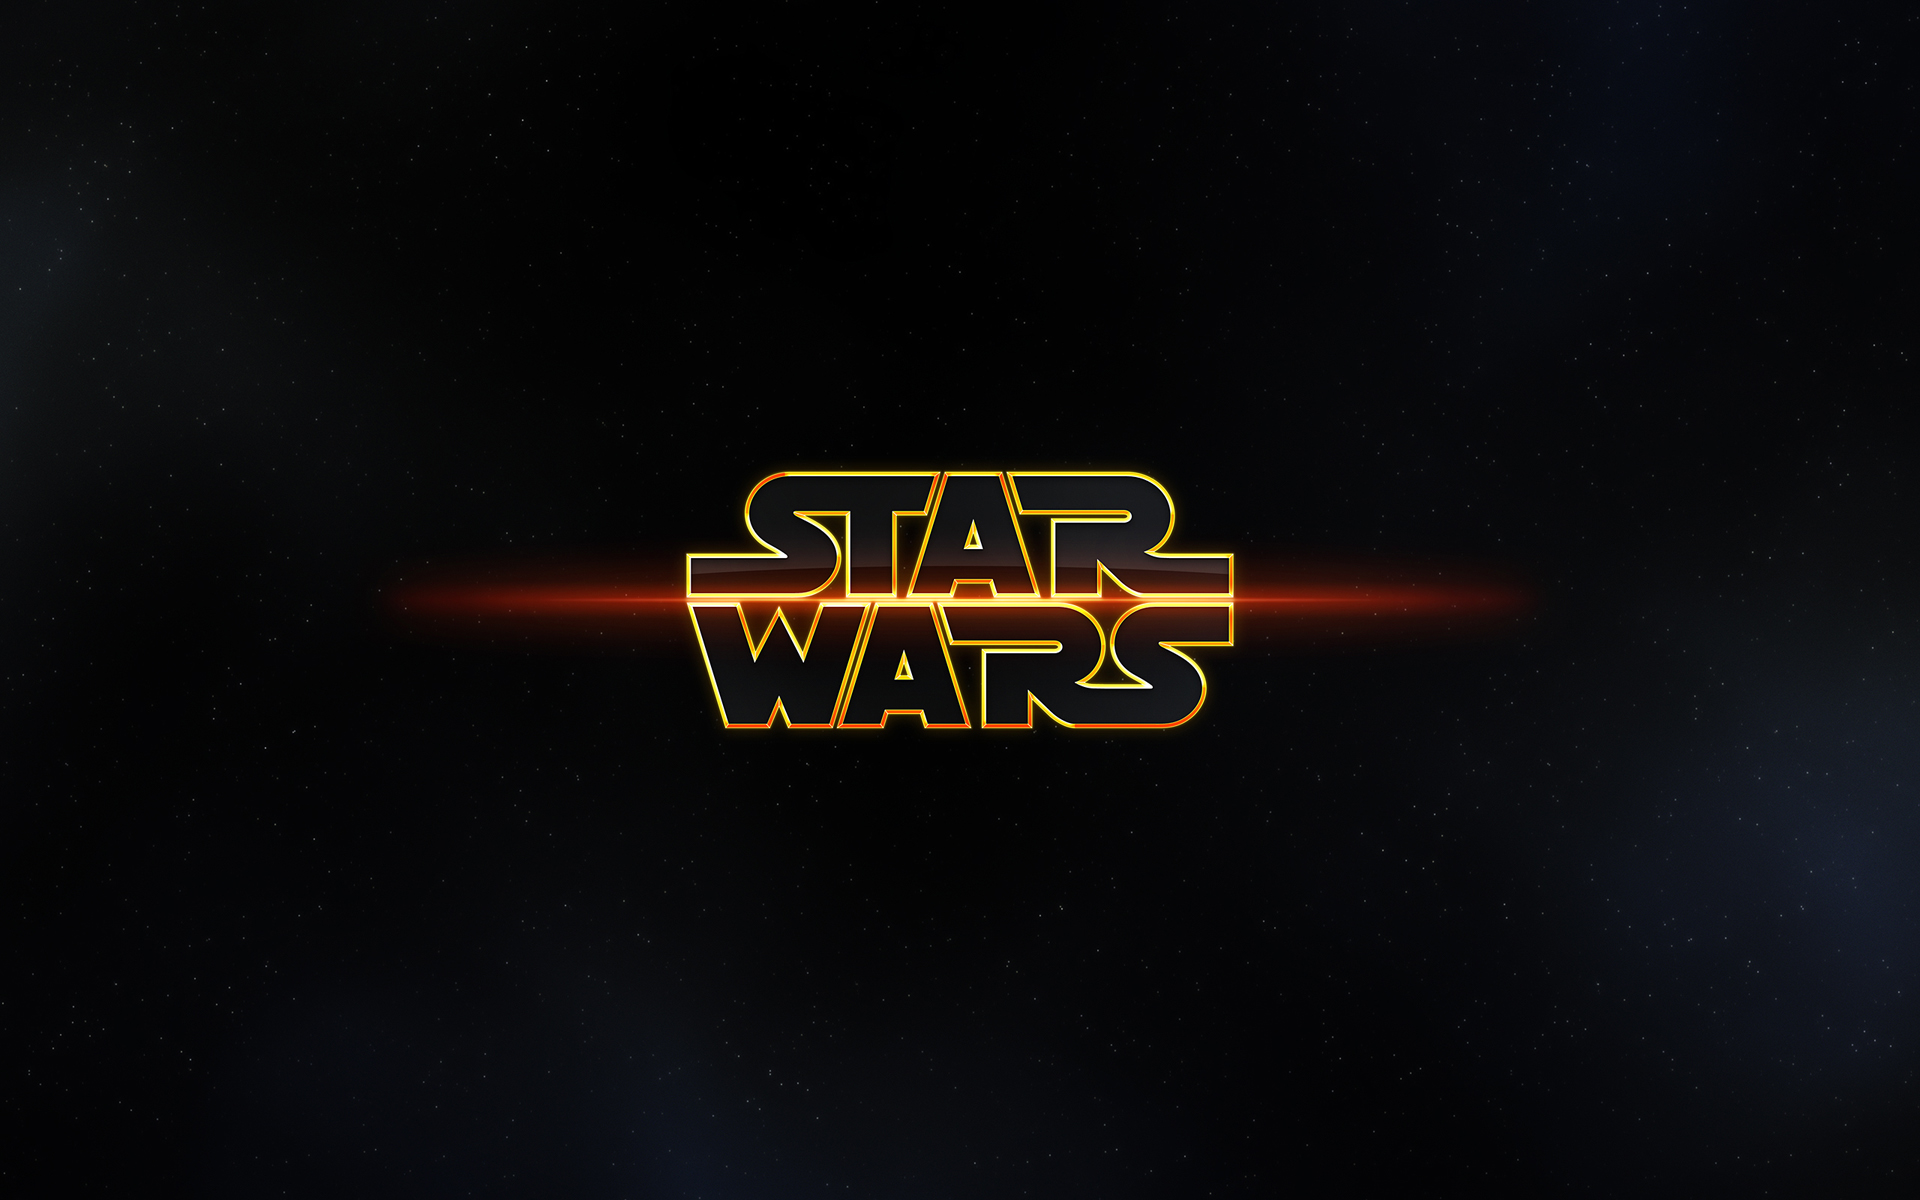 STAR WARS Wallpaper Set 2 Awesome Wallpapers 1920x1200